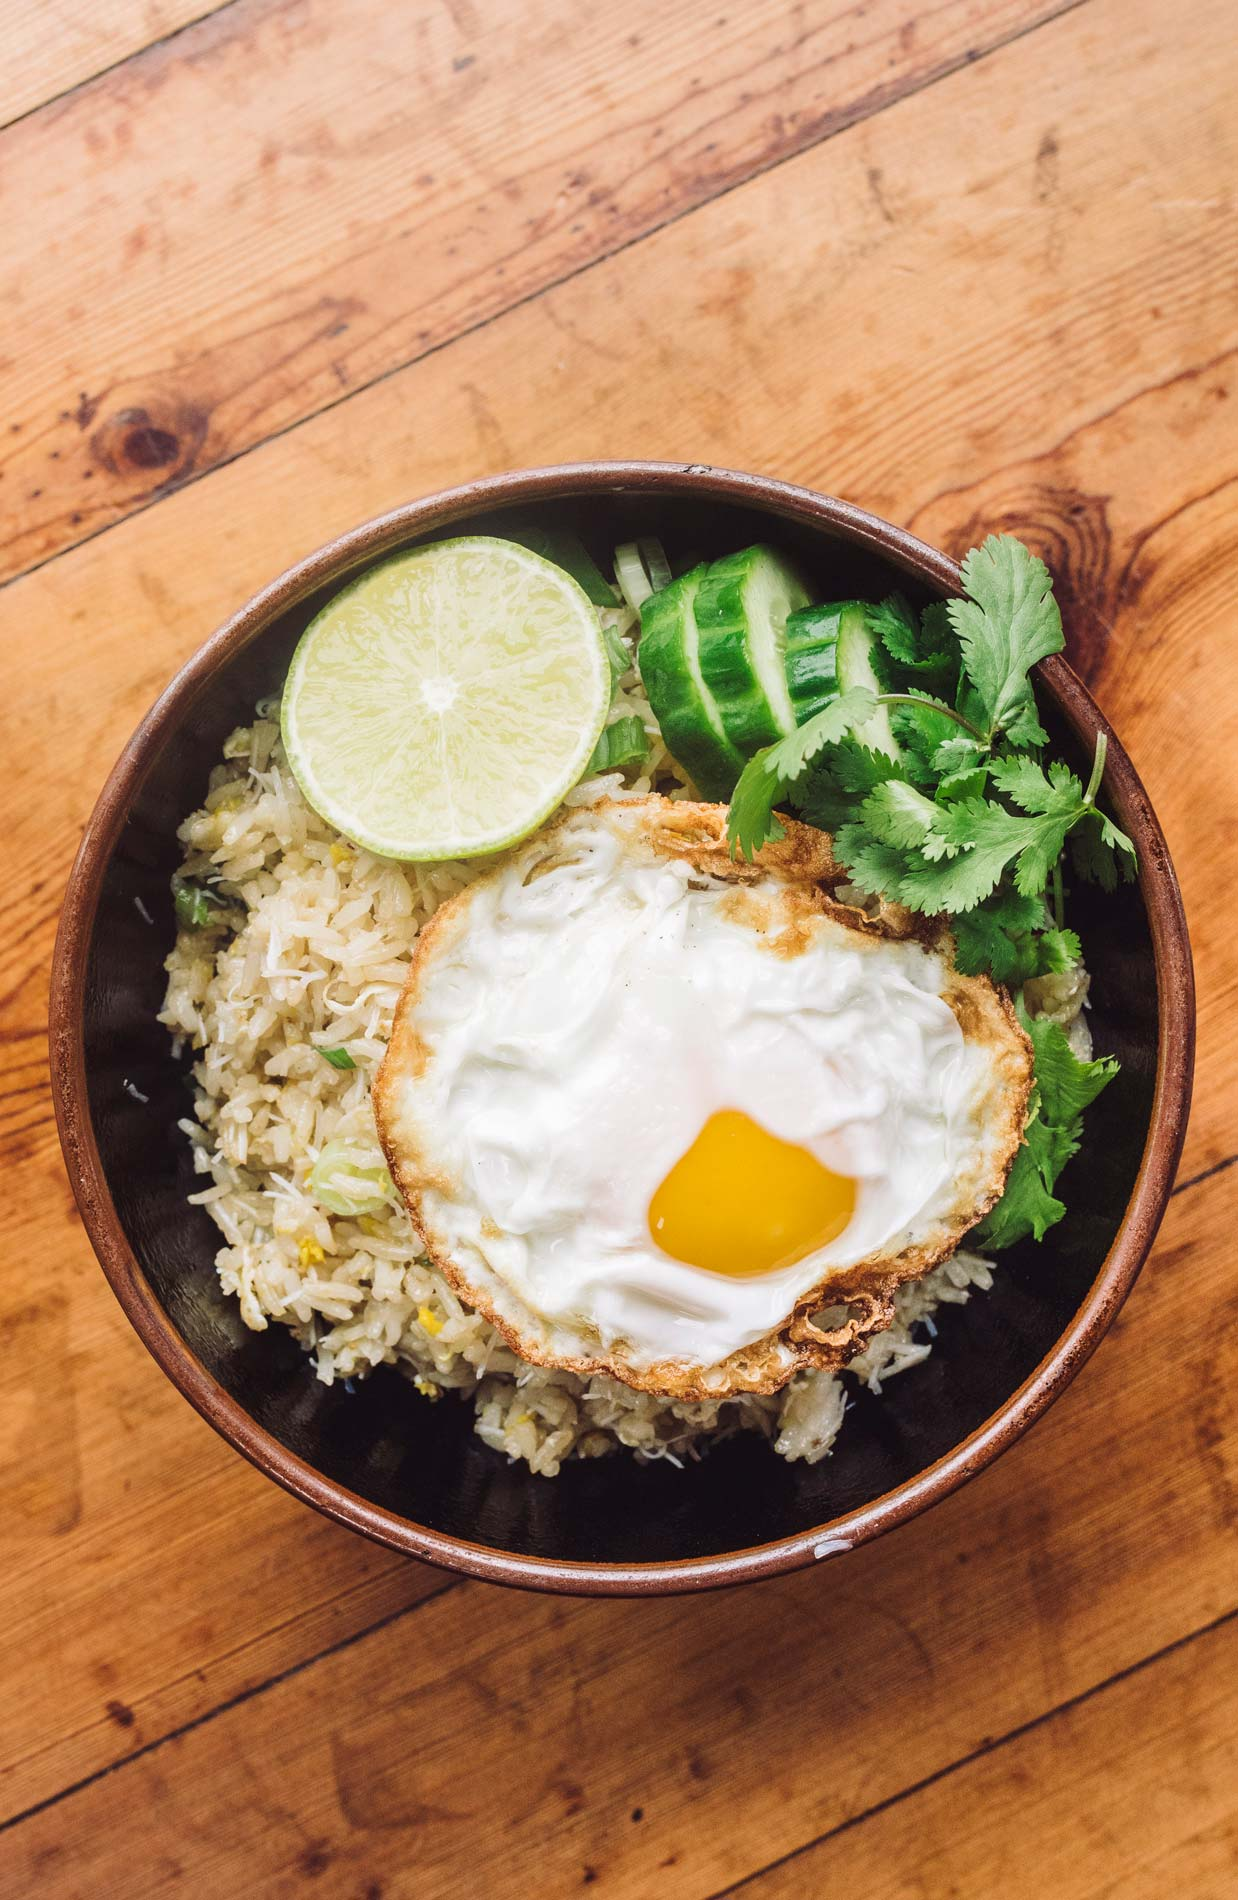 Fried Rice + Fried Egg = Perfect